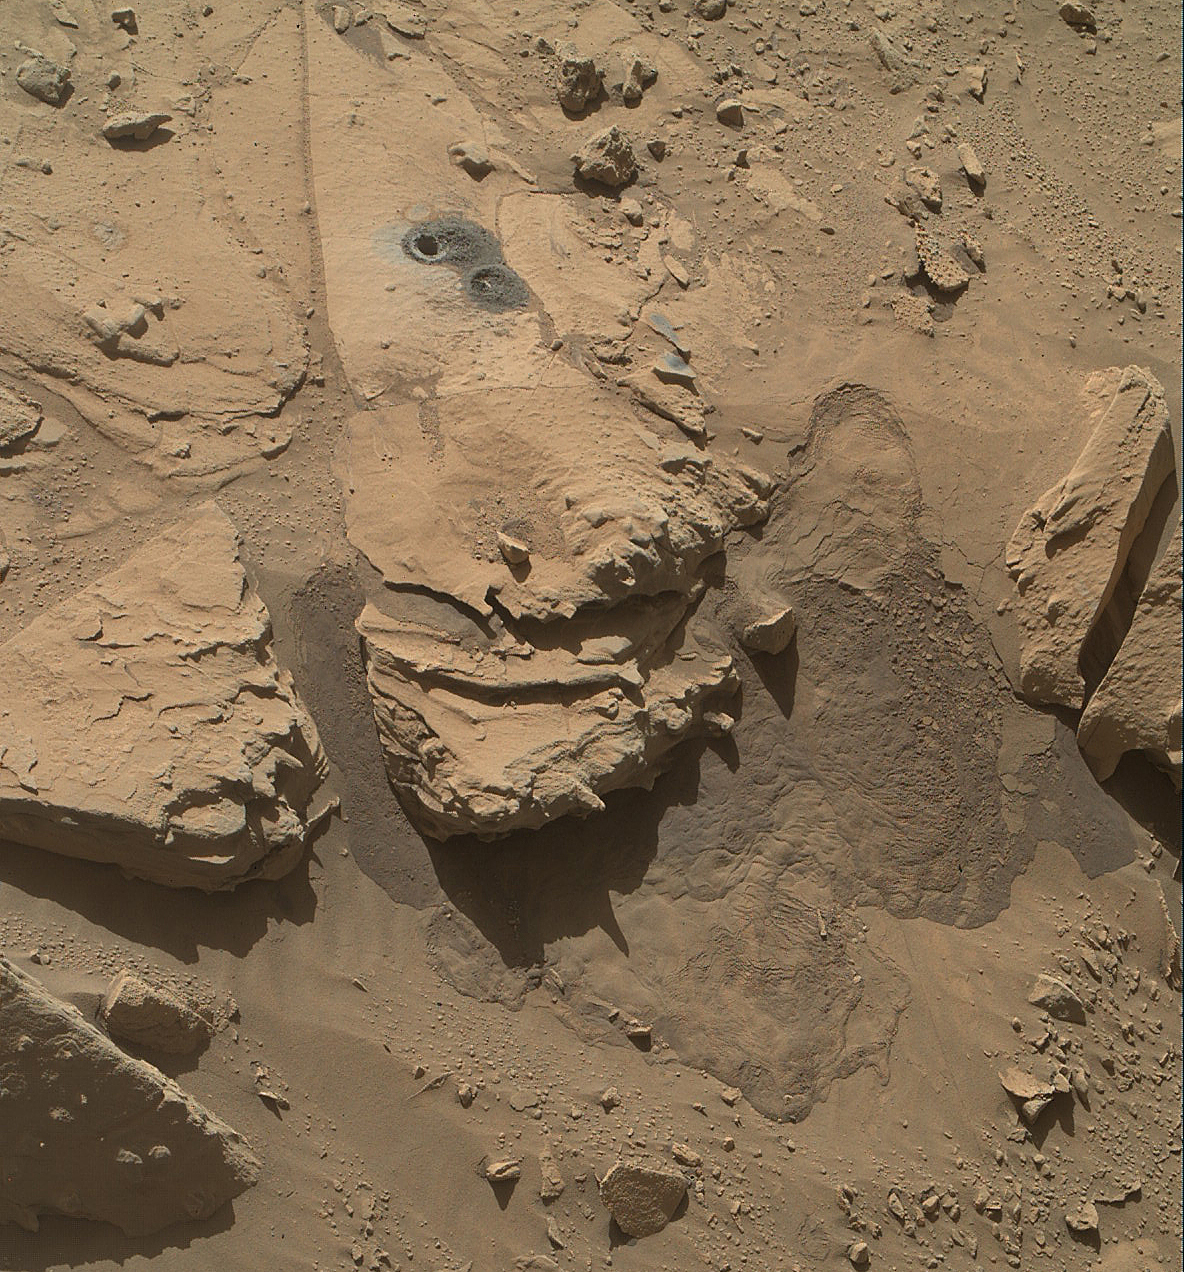 NASA Mars Rover Curiosity Wrapping Up Waypoint Work | NASA